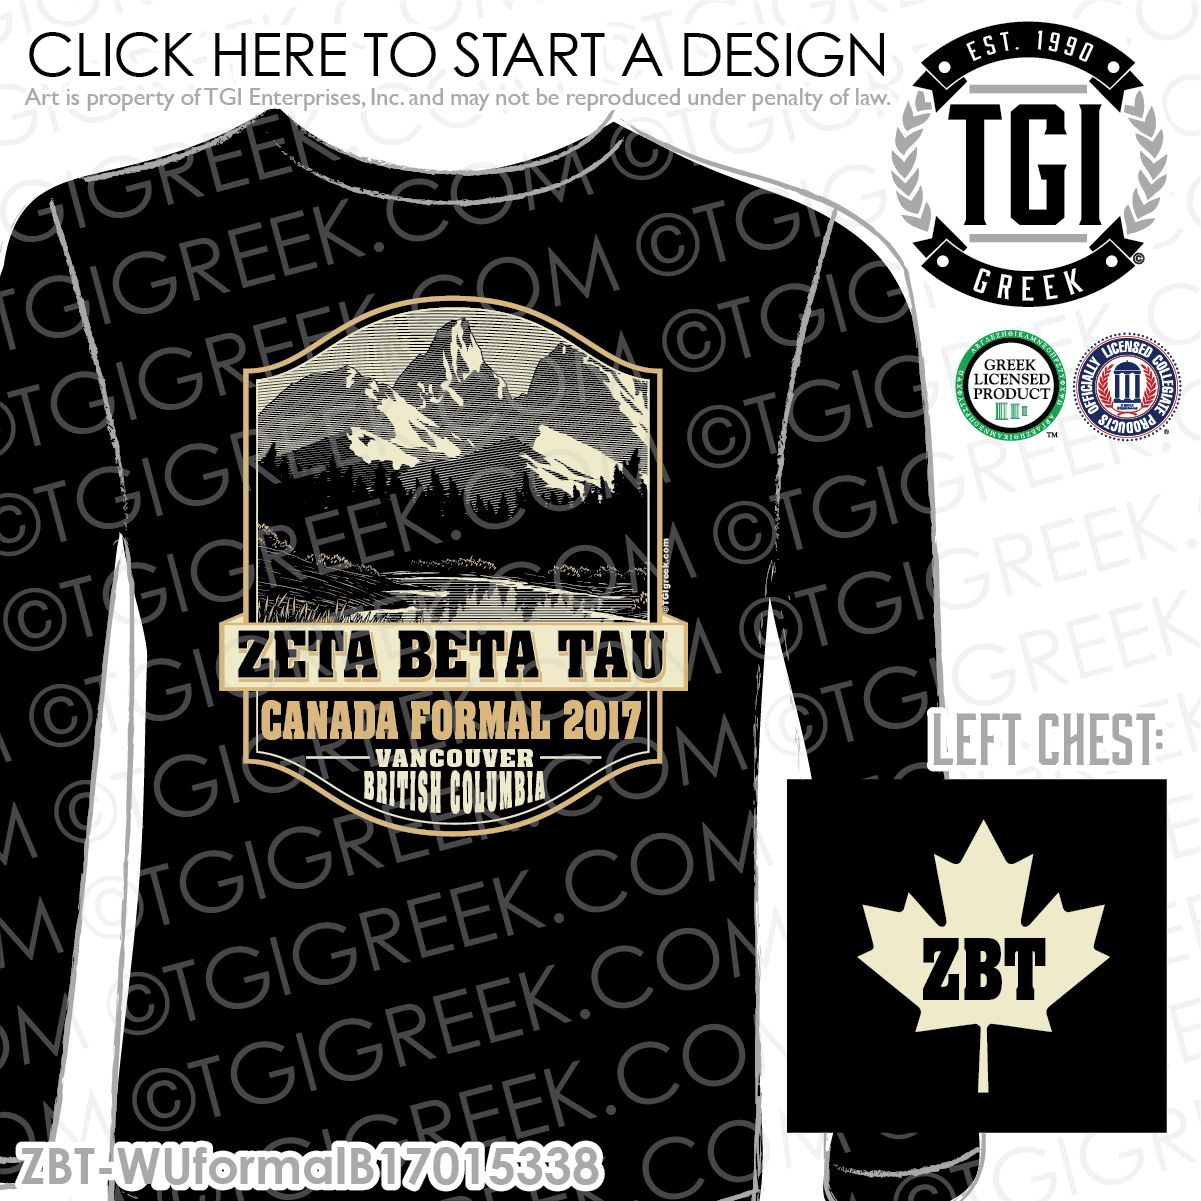 Copyright Great West Graphics custom t shirt silk screen printing Vancouver  BC